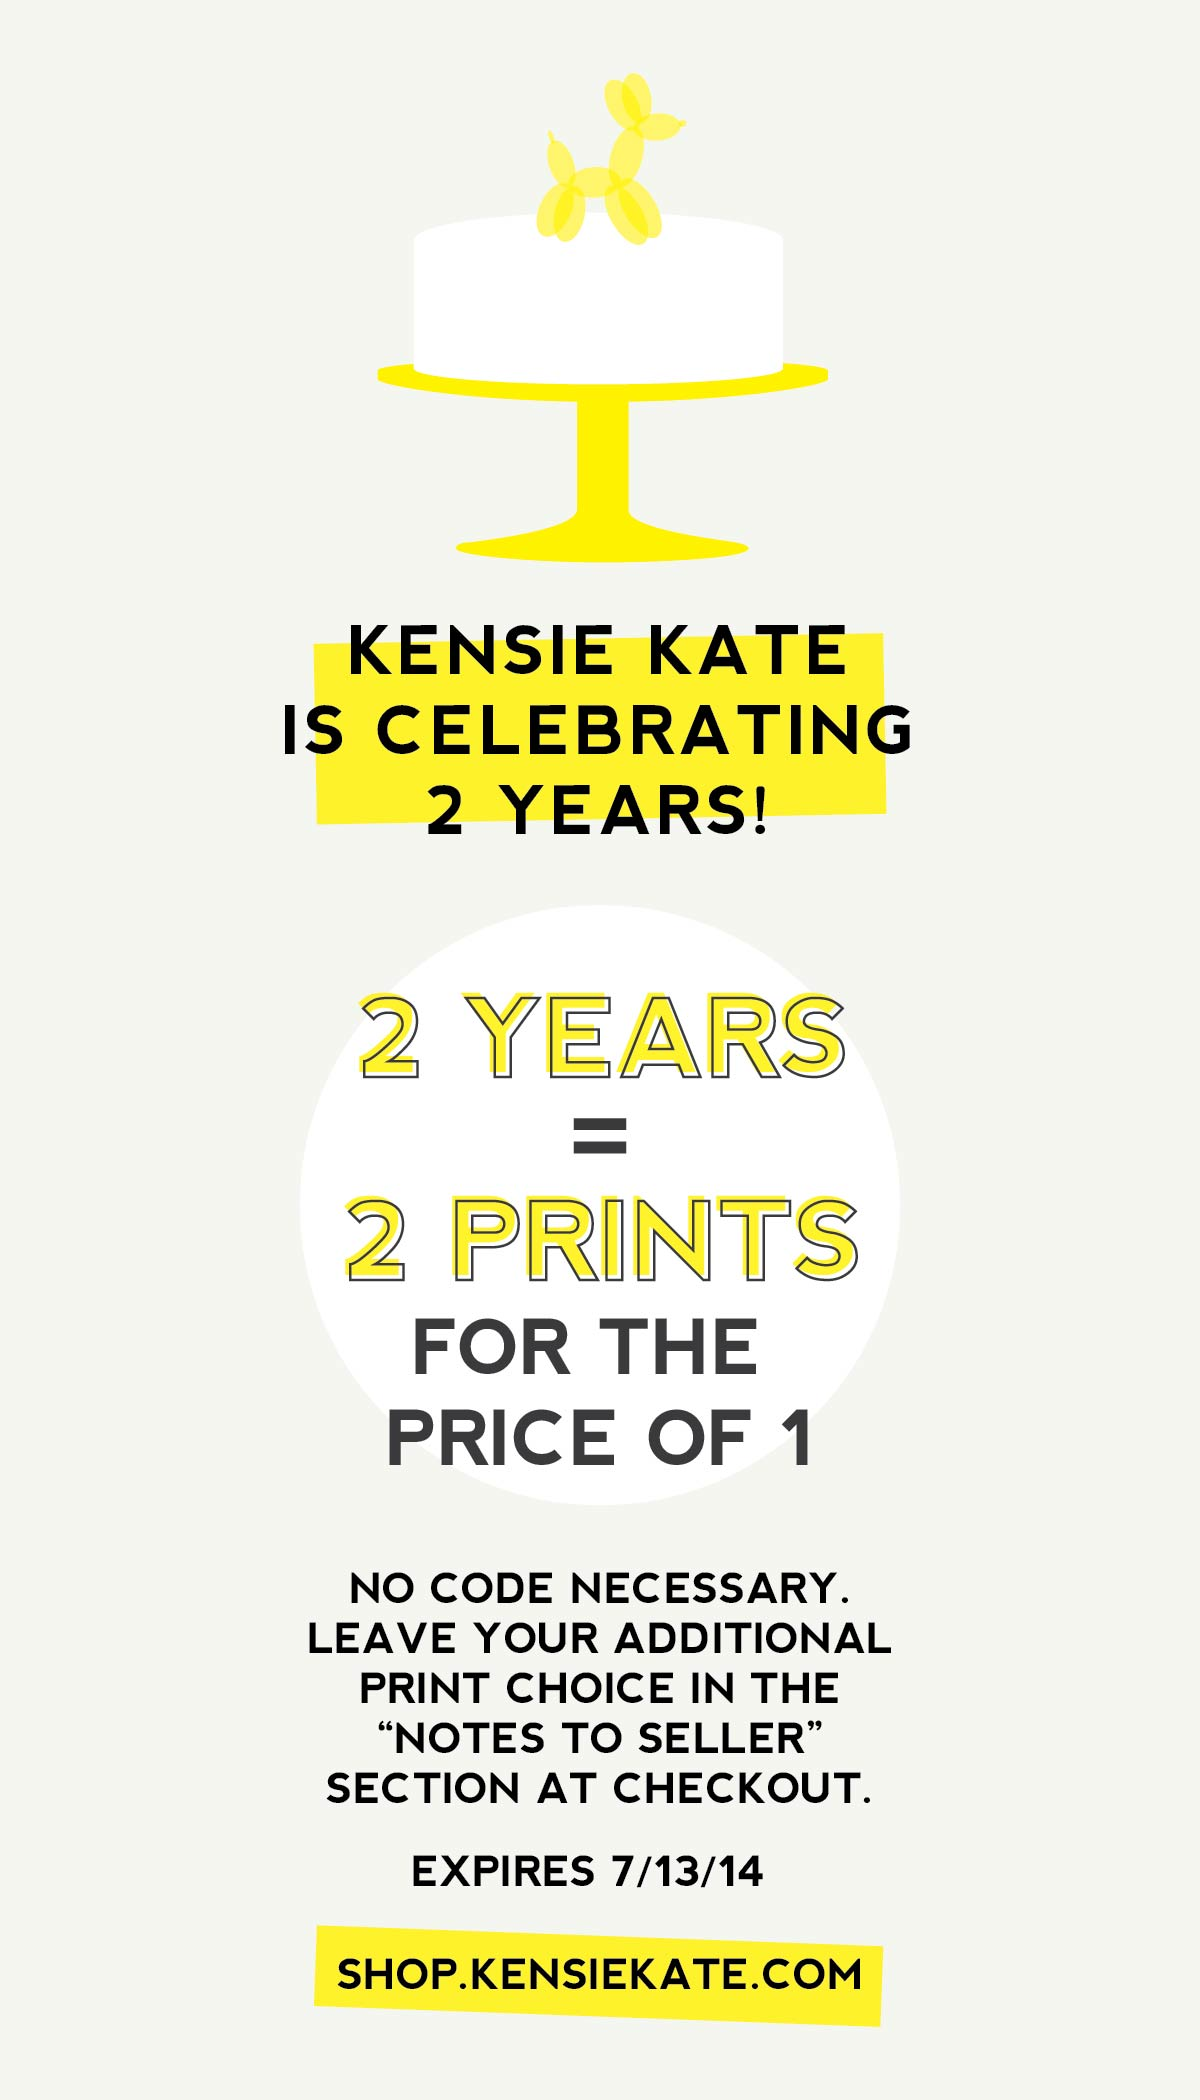 kensie kate 2 year anniversary sale | free print with every print you order through 7/13/14